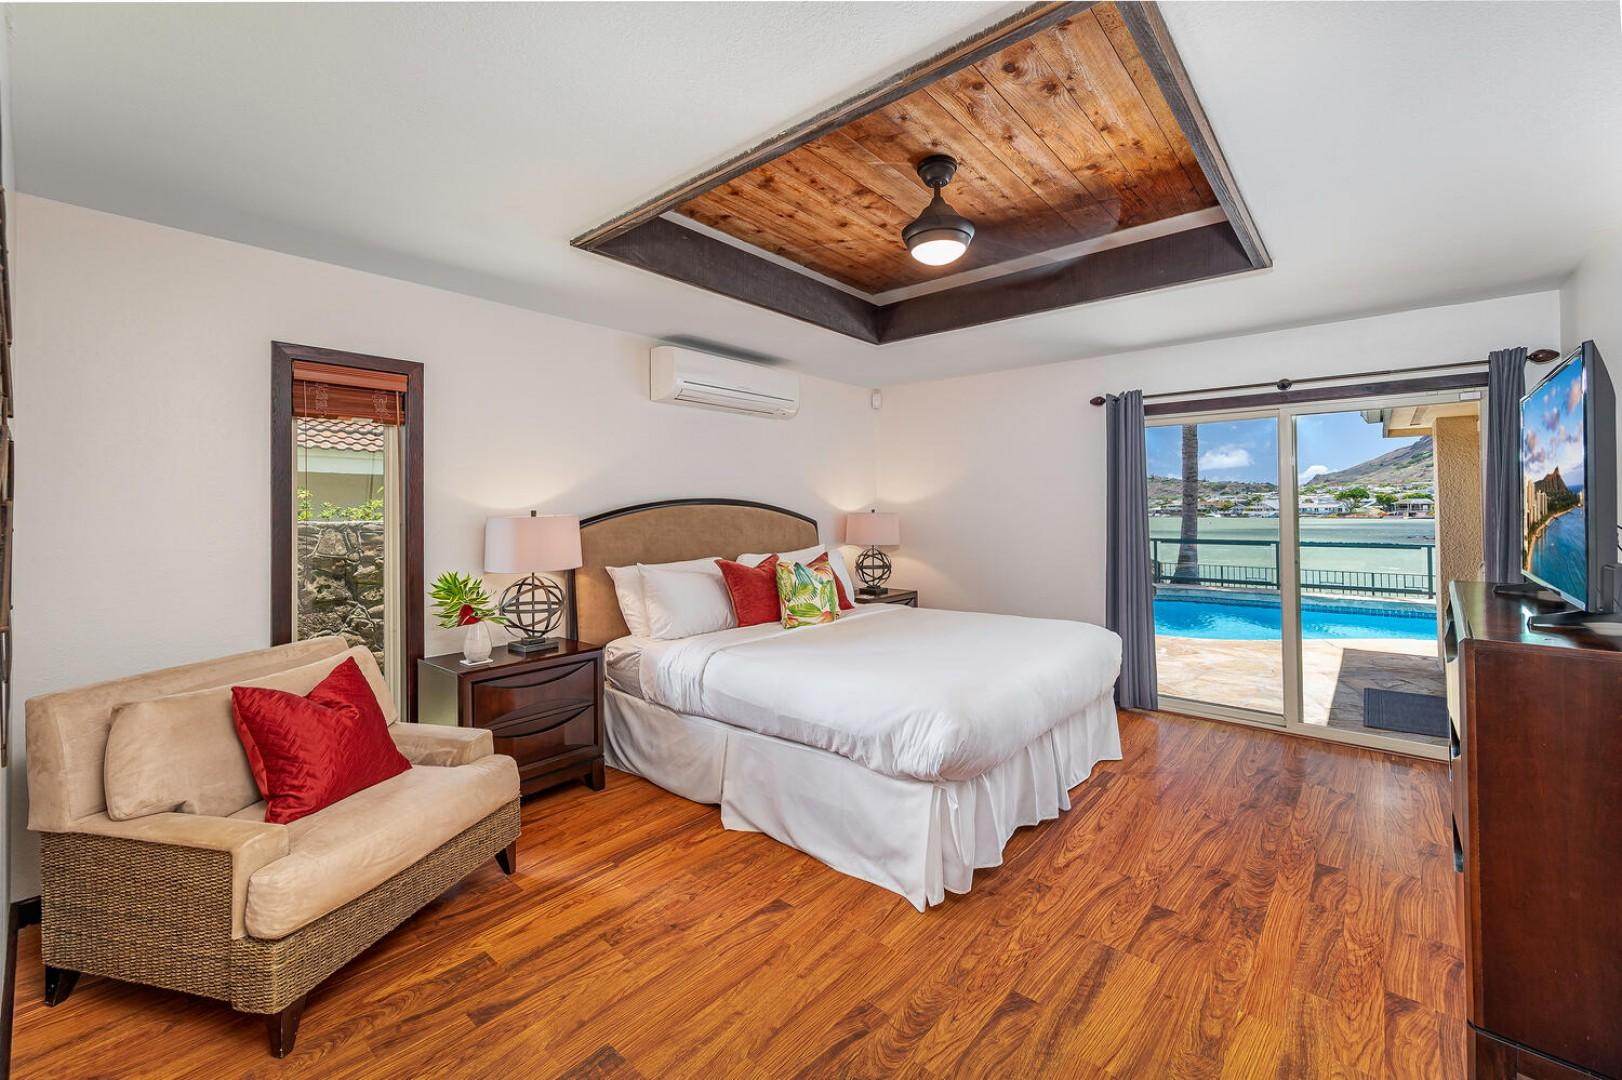 Master bedroom with marina and pool view and its own ensuite and walk in closet.